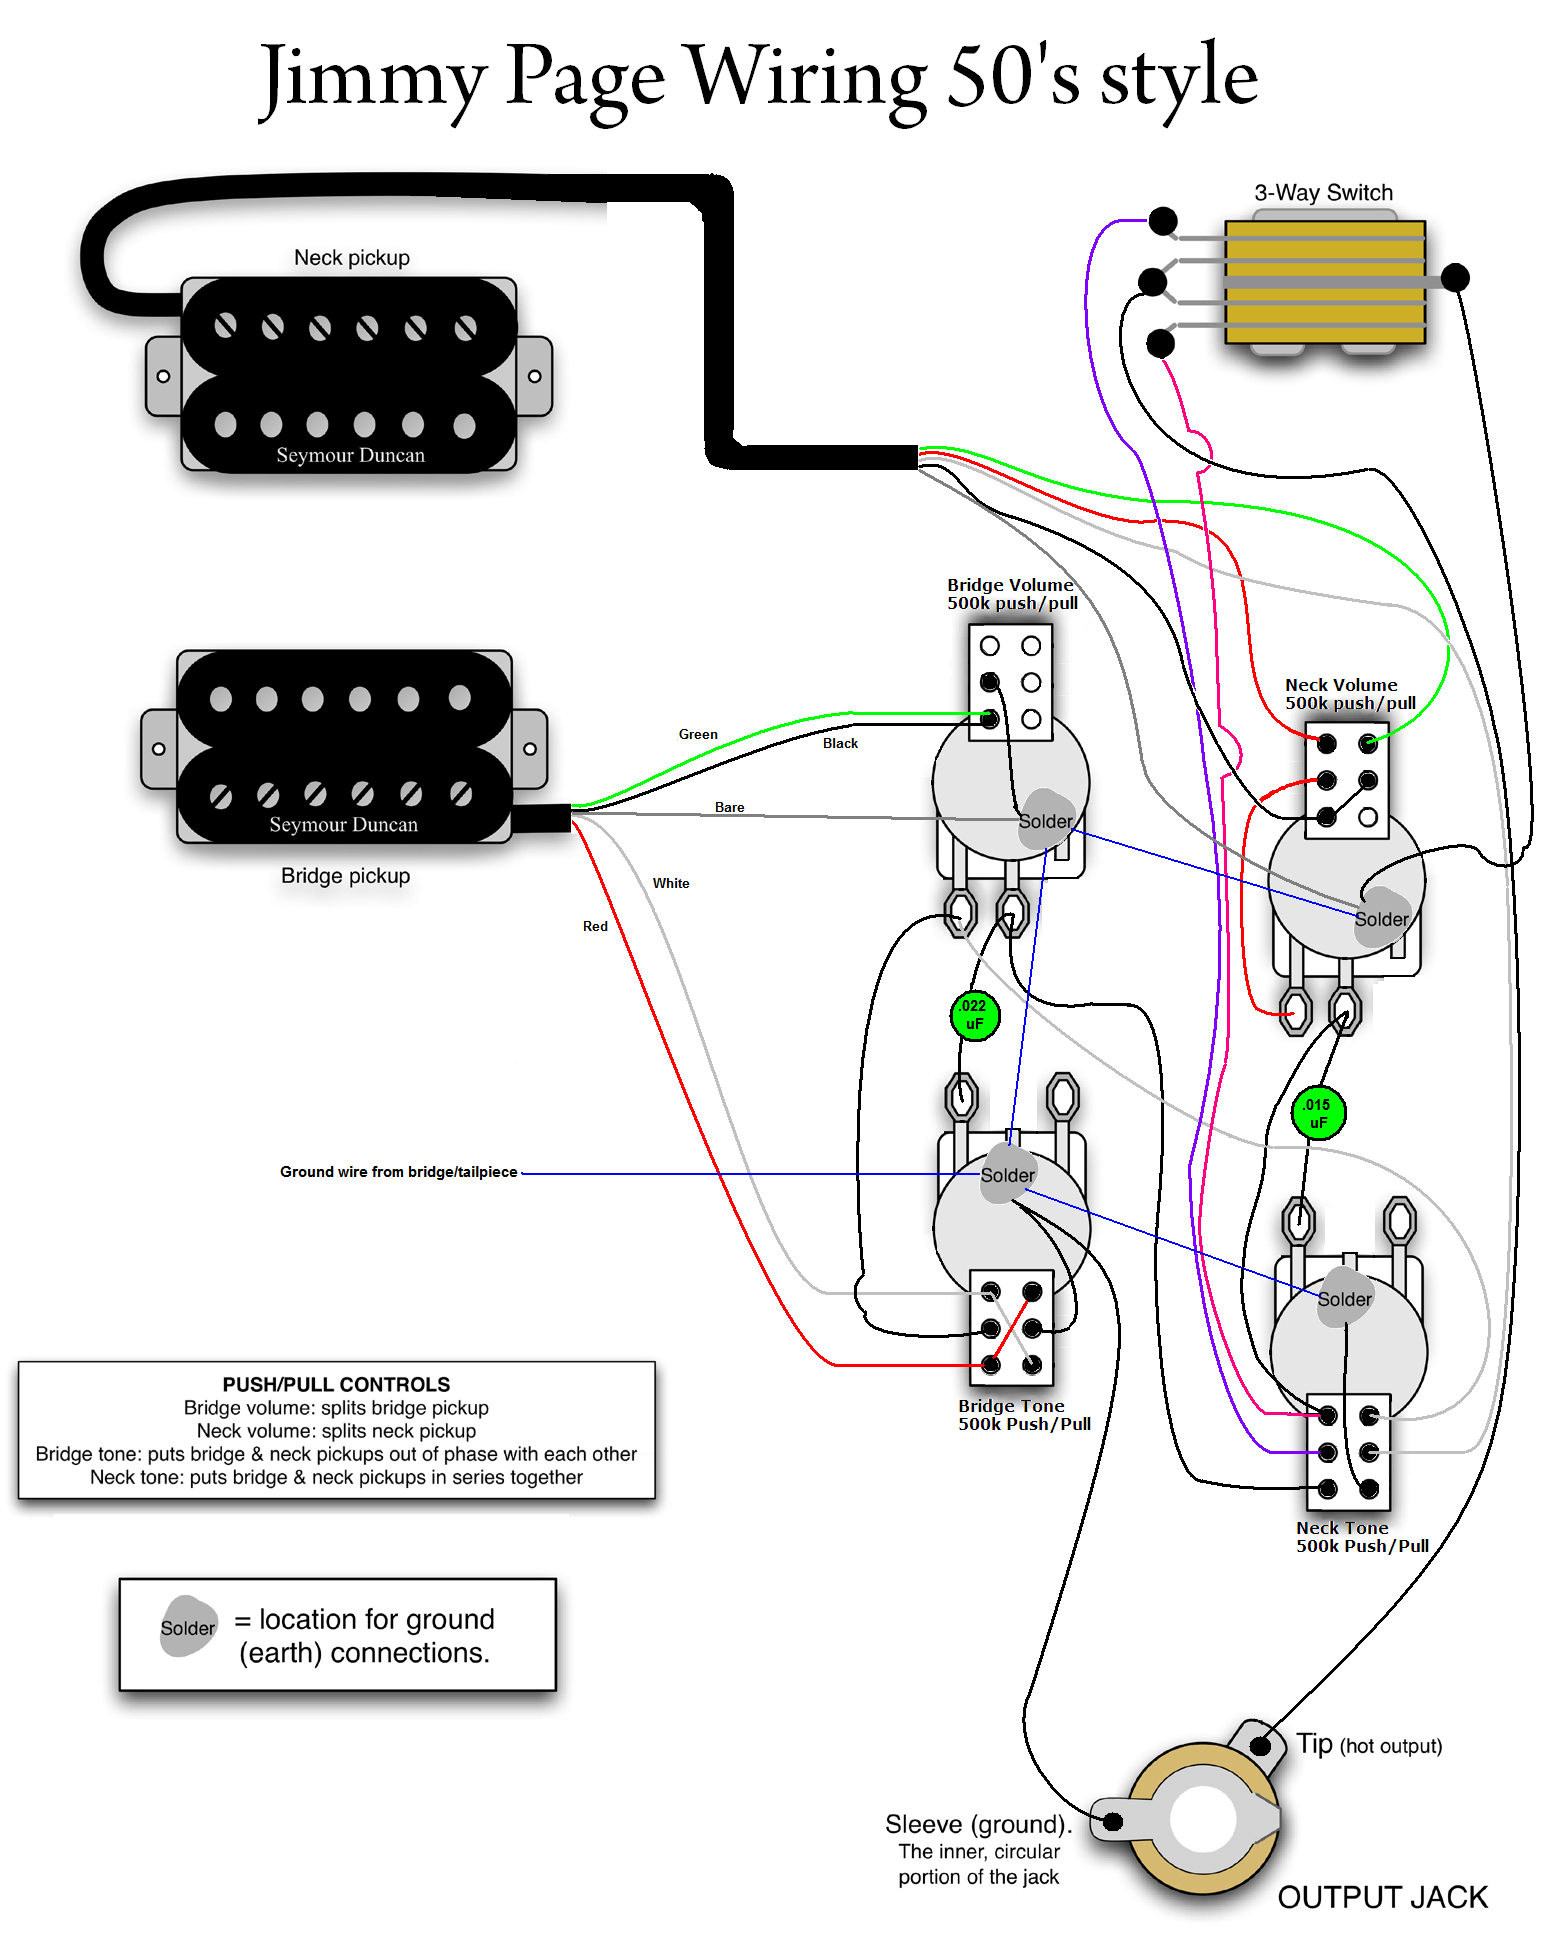 les paul wiring diagram coil tap for smoke detectors uk jimmy page 50s mylespaul instruments